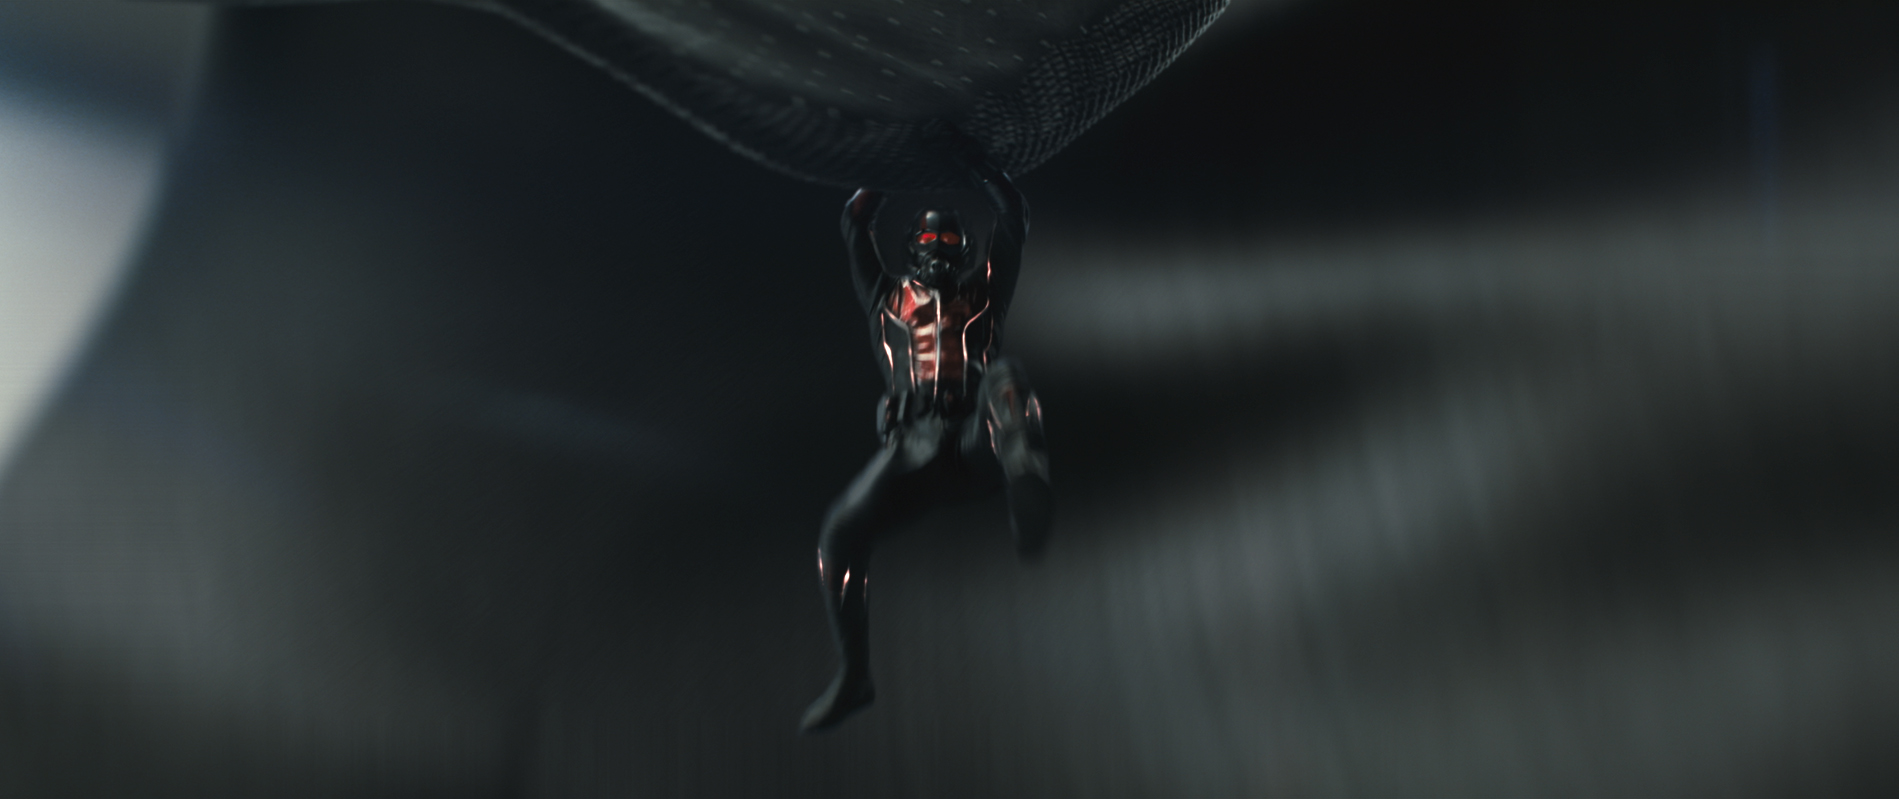 The suit is powered by Pym particles, which allows its wearer to change size at will.